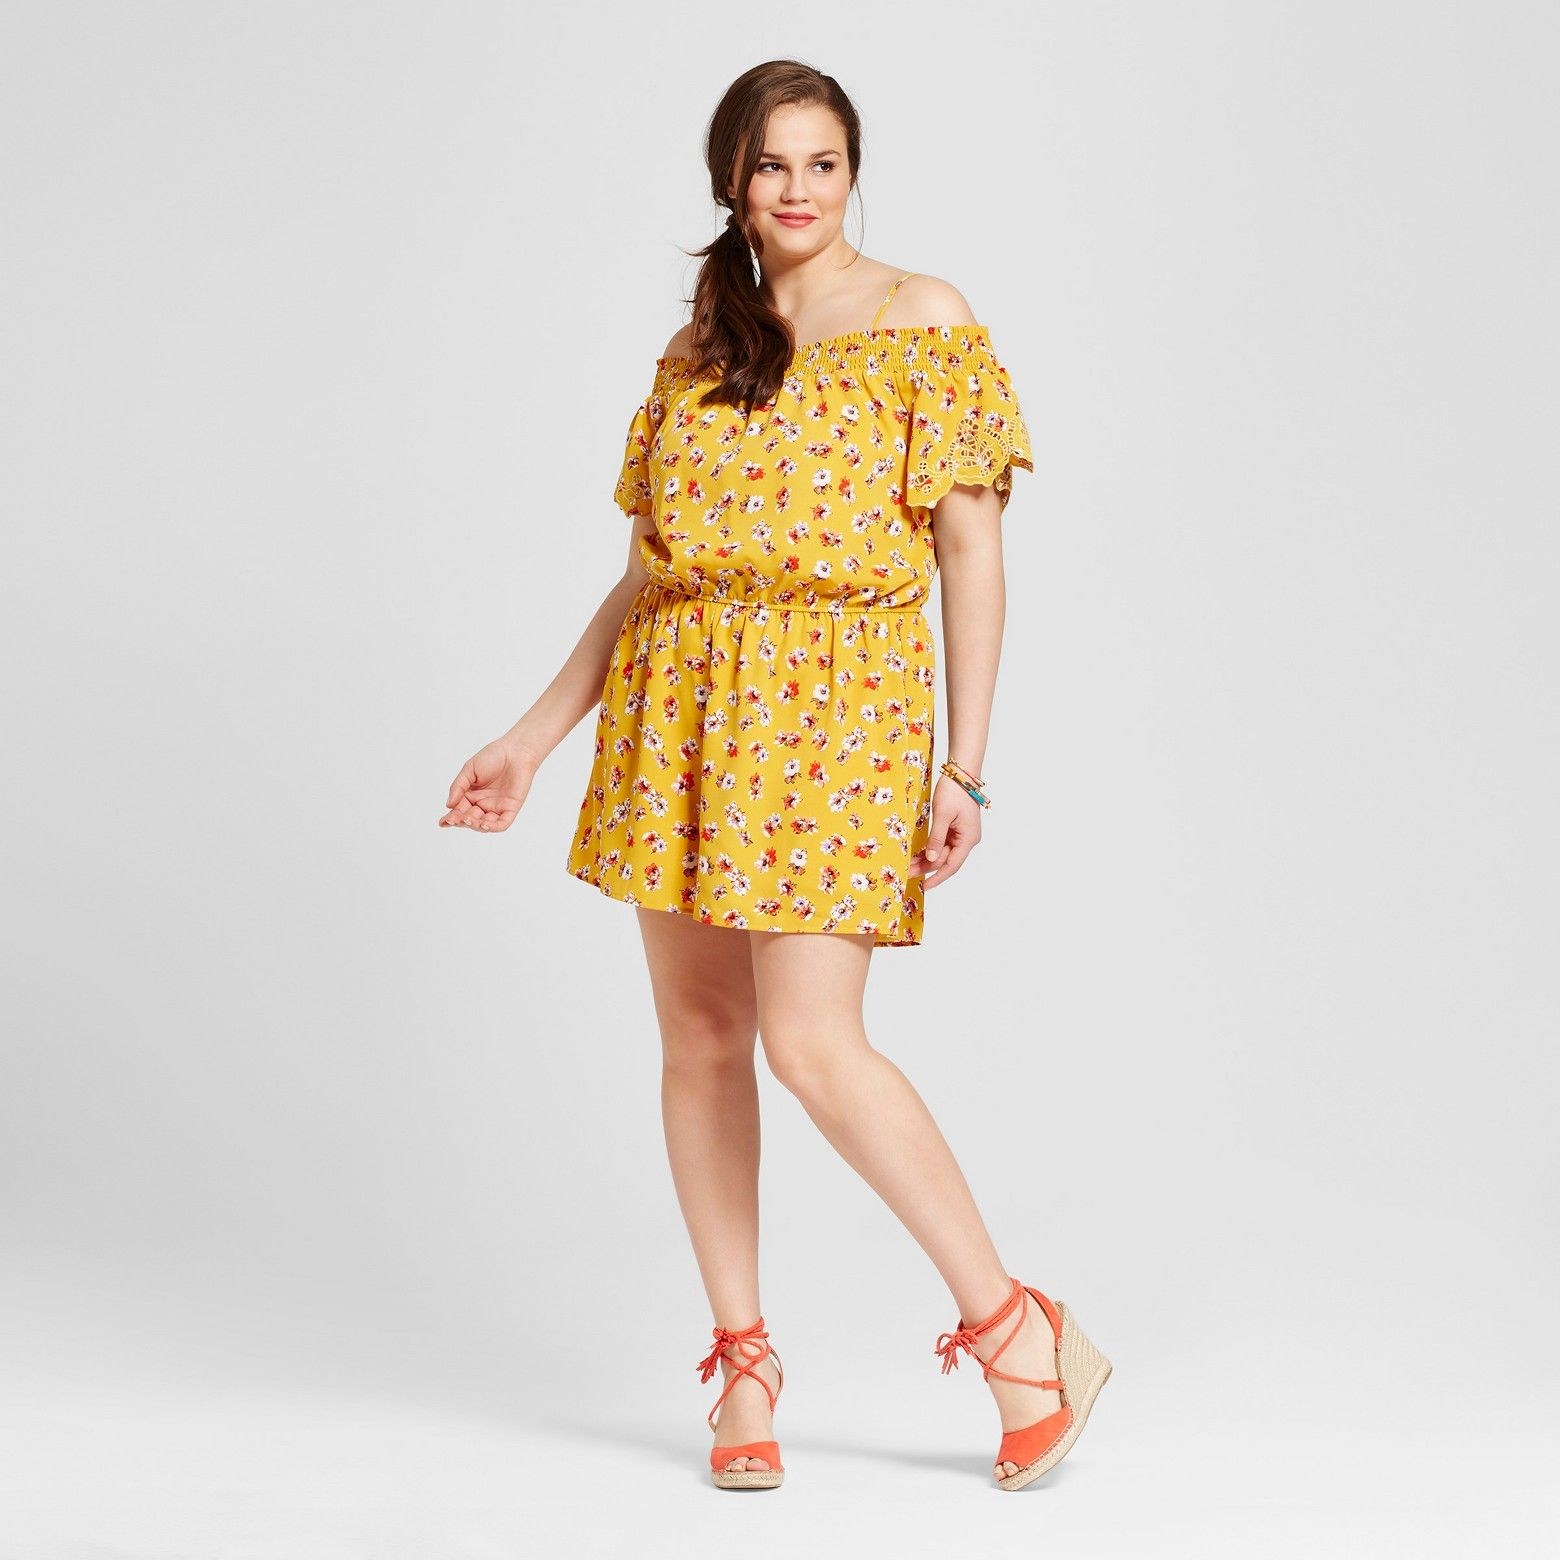 39a37a037fef The Women s Plus Size Embroidered Romper in Yellow Floral by ...